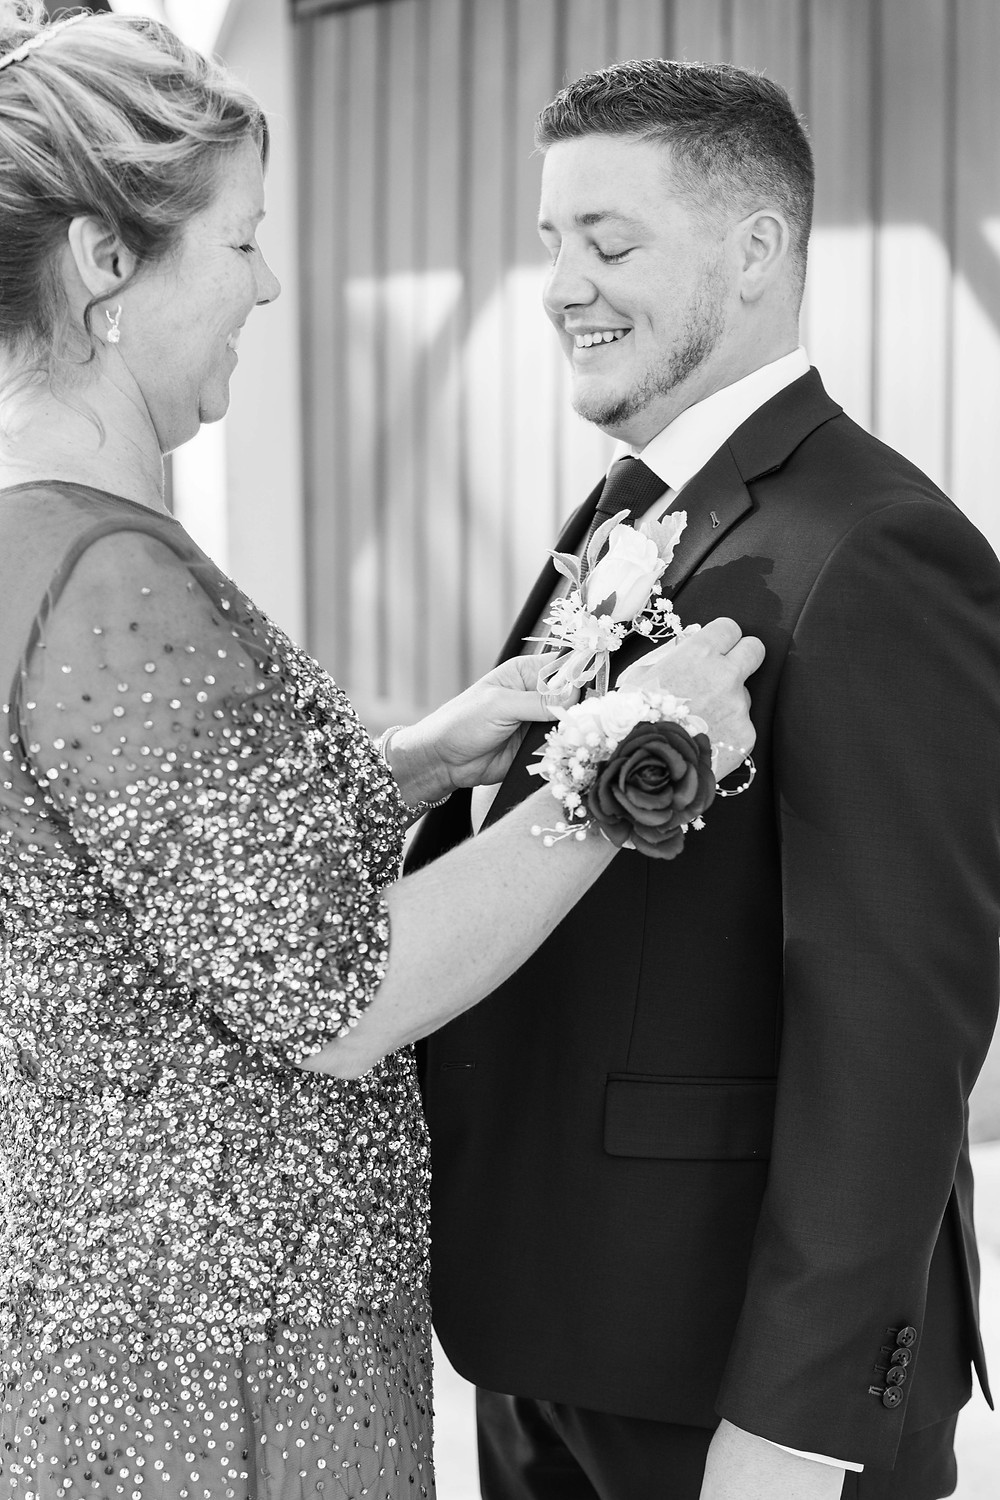 Groom and mom smiling wedding American 1 event center Jackson michigan